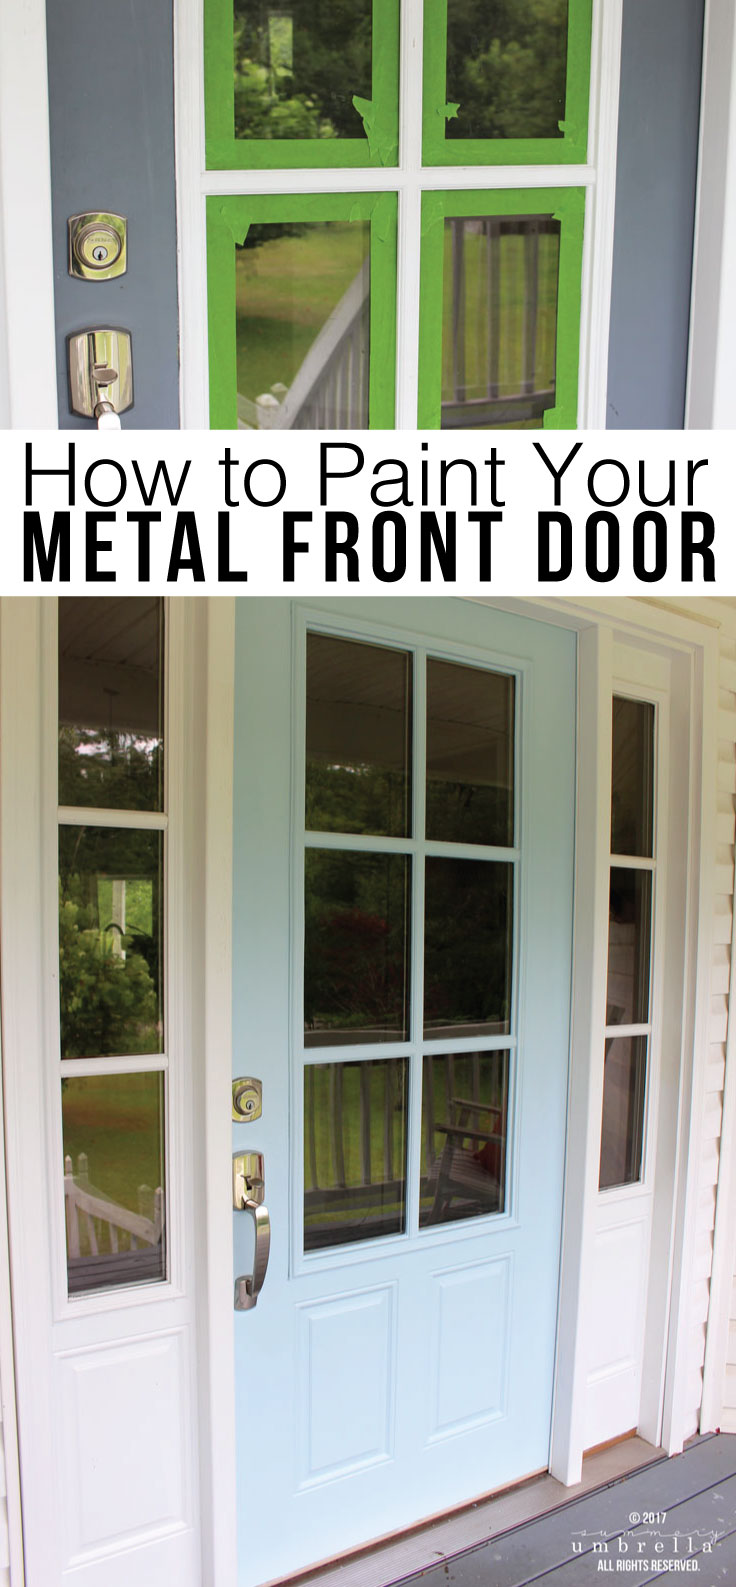 How To Paint Your Metal Front Door The Easy Way With Just A Few Simple Steps